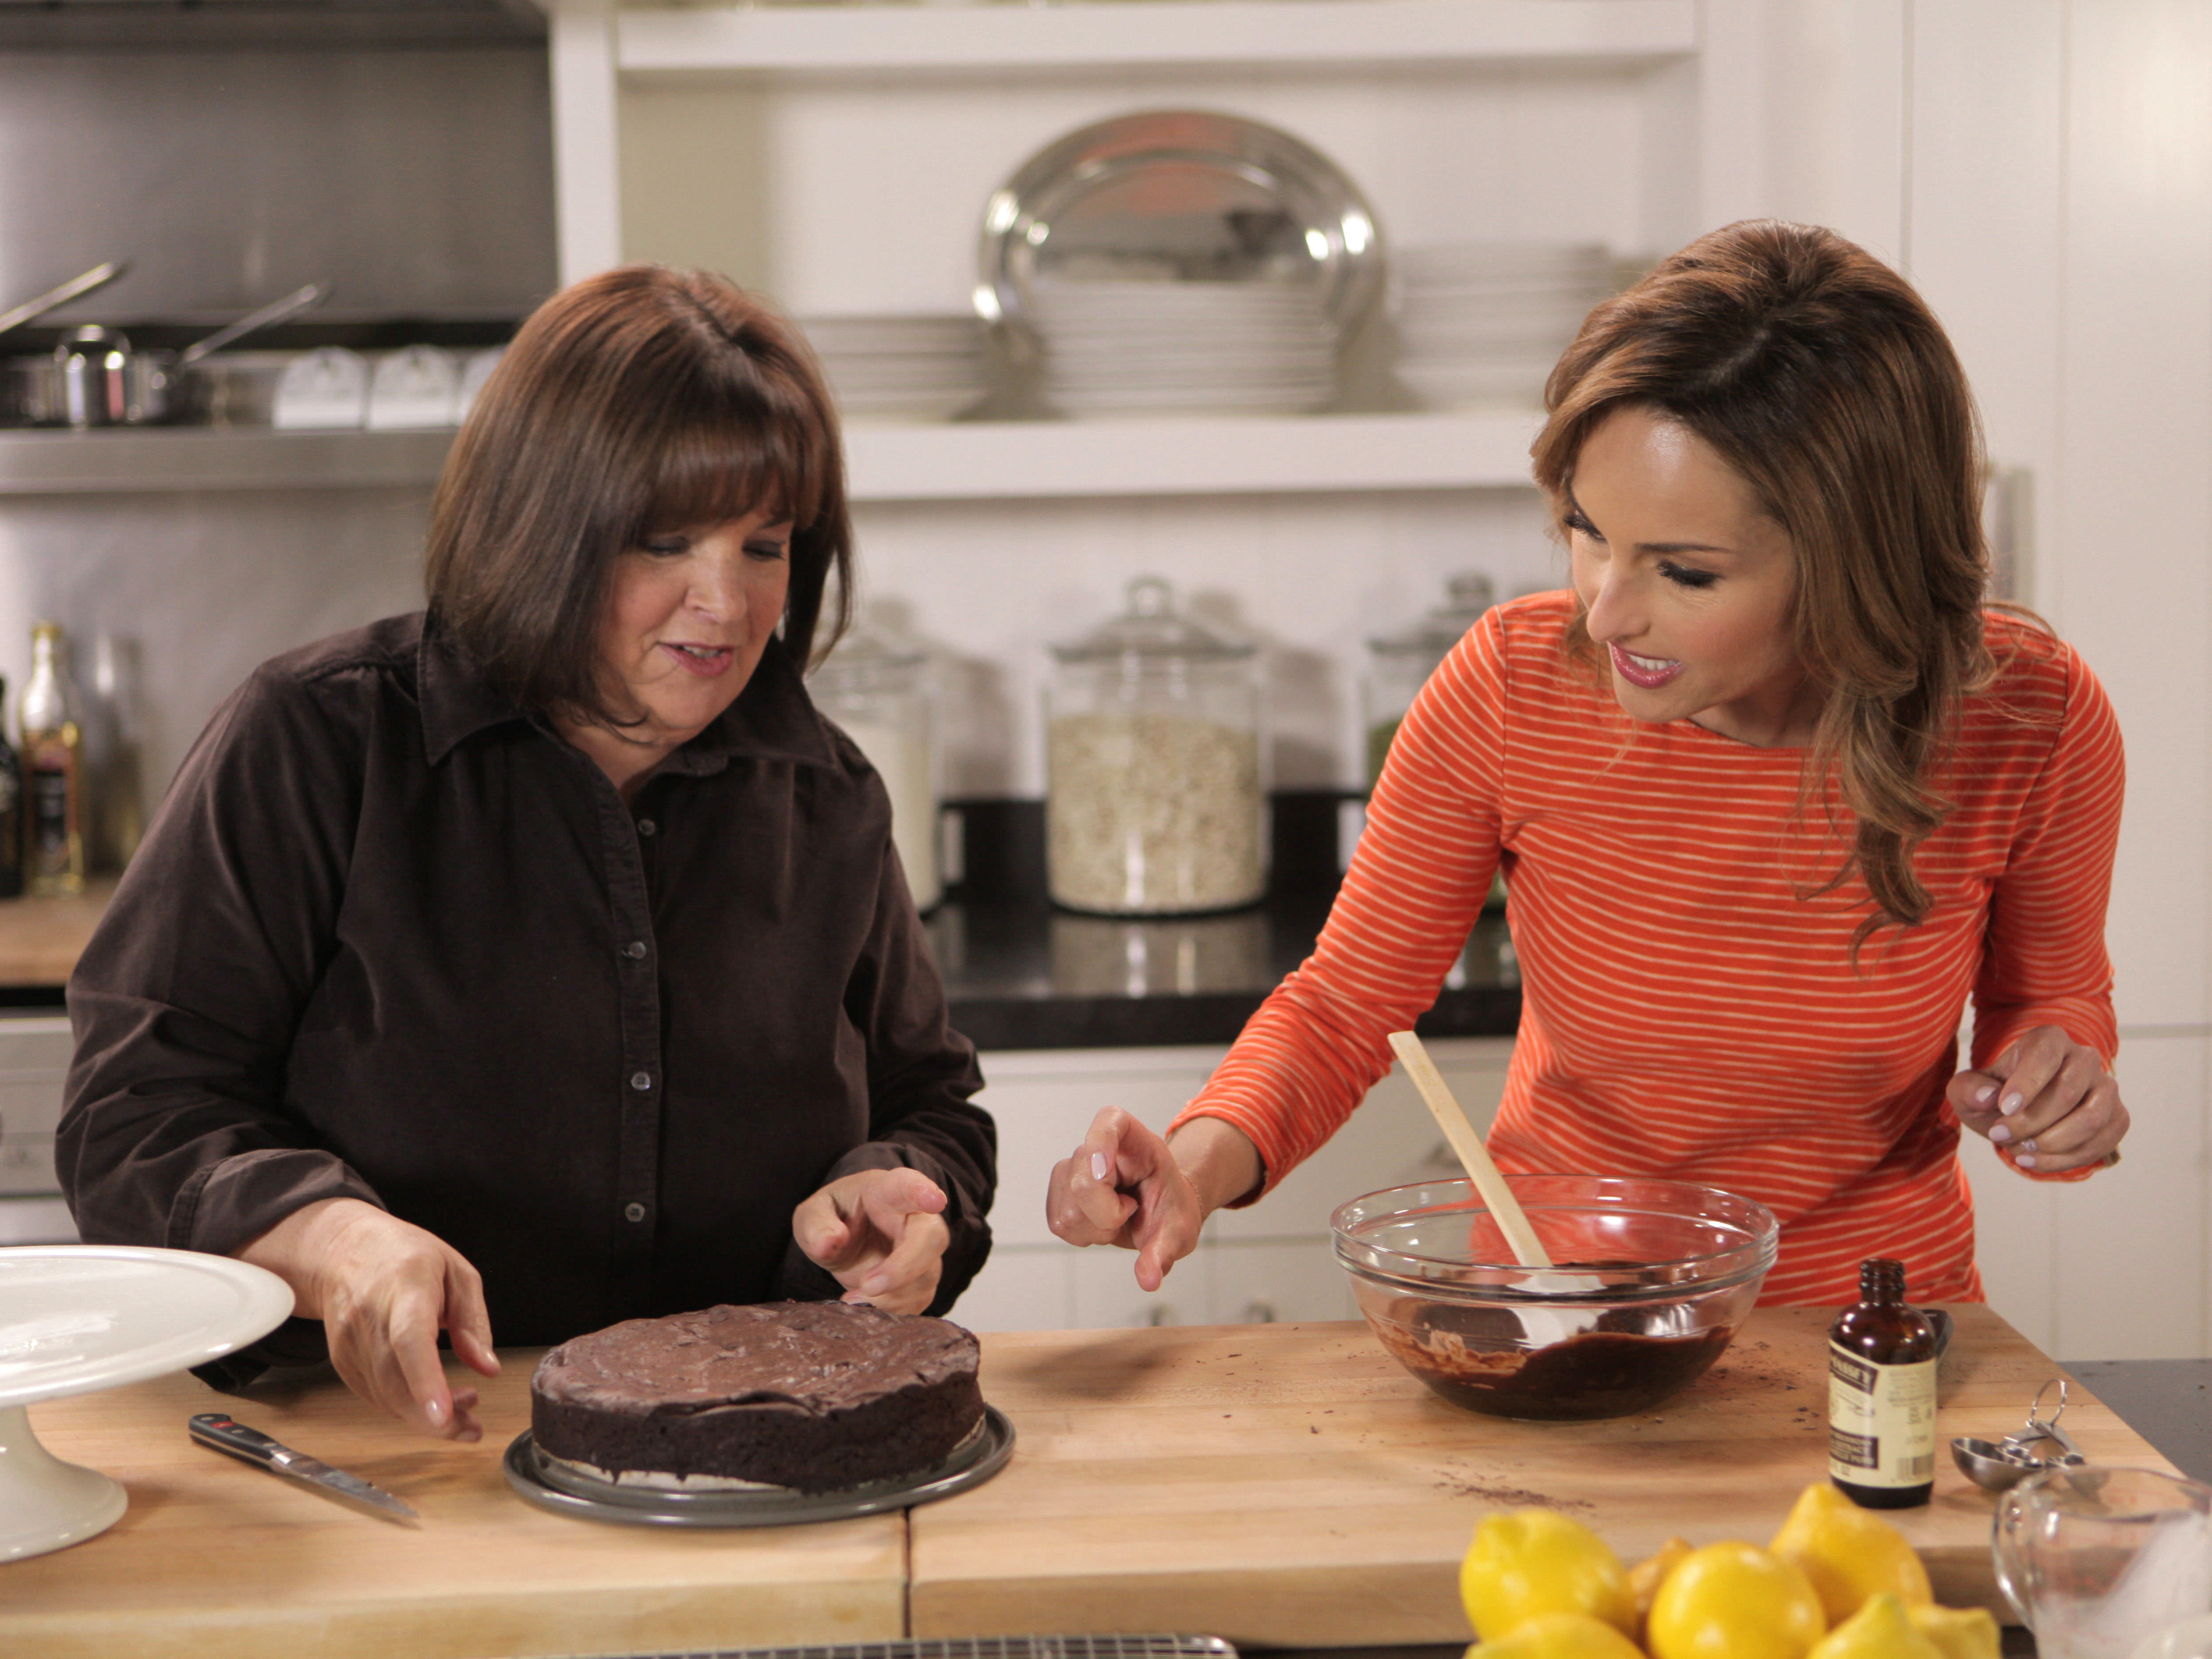 Italian American cooking show hosts